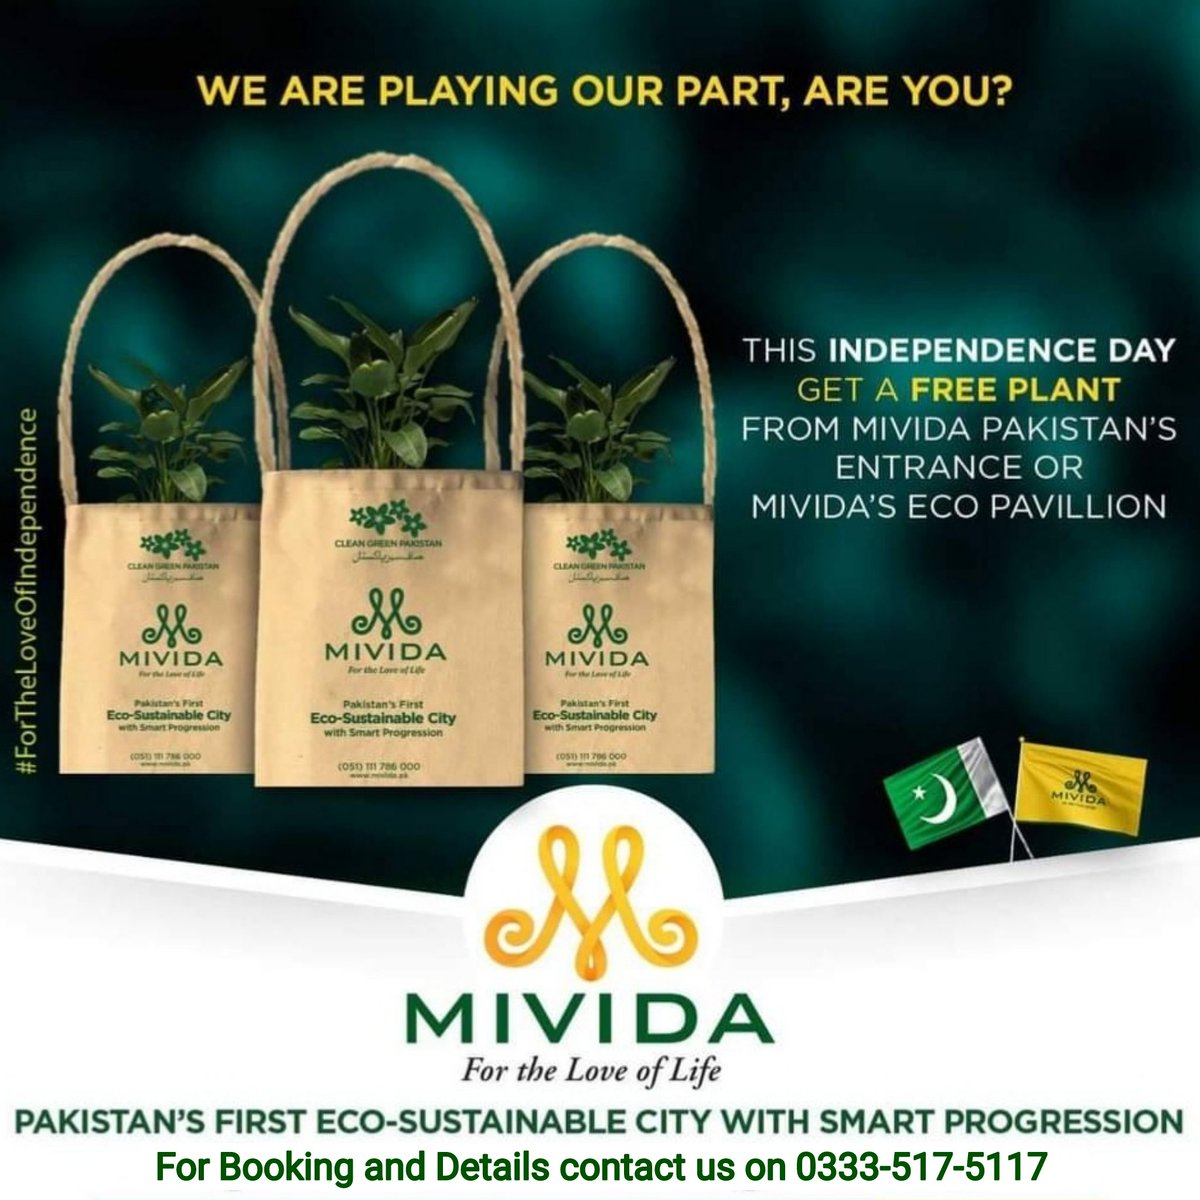 This Independence day get a free tree from Mivida City Islamabad's Entrance or Mivida Eco Pavillion. Join hand with us of PM #ImranKhan 's Initiatives #GreenPakistan. For more information contact us on 0333-517-5117  #Mivida #MividaPakistan #Pakistan #MividaCity https://t.co/IpEIF5c2WD